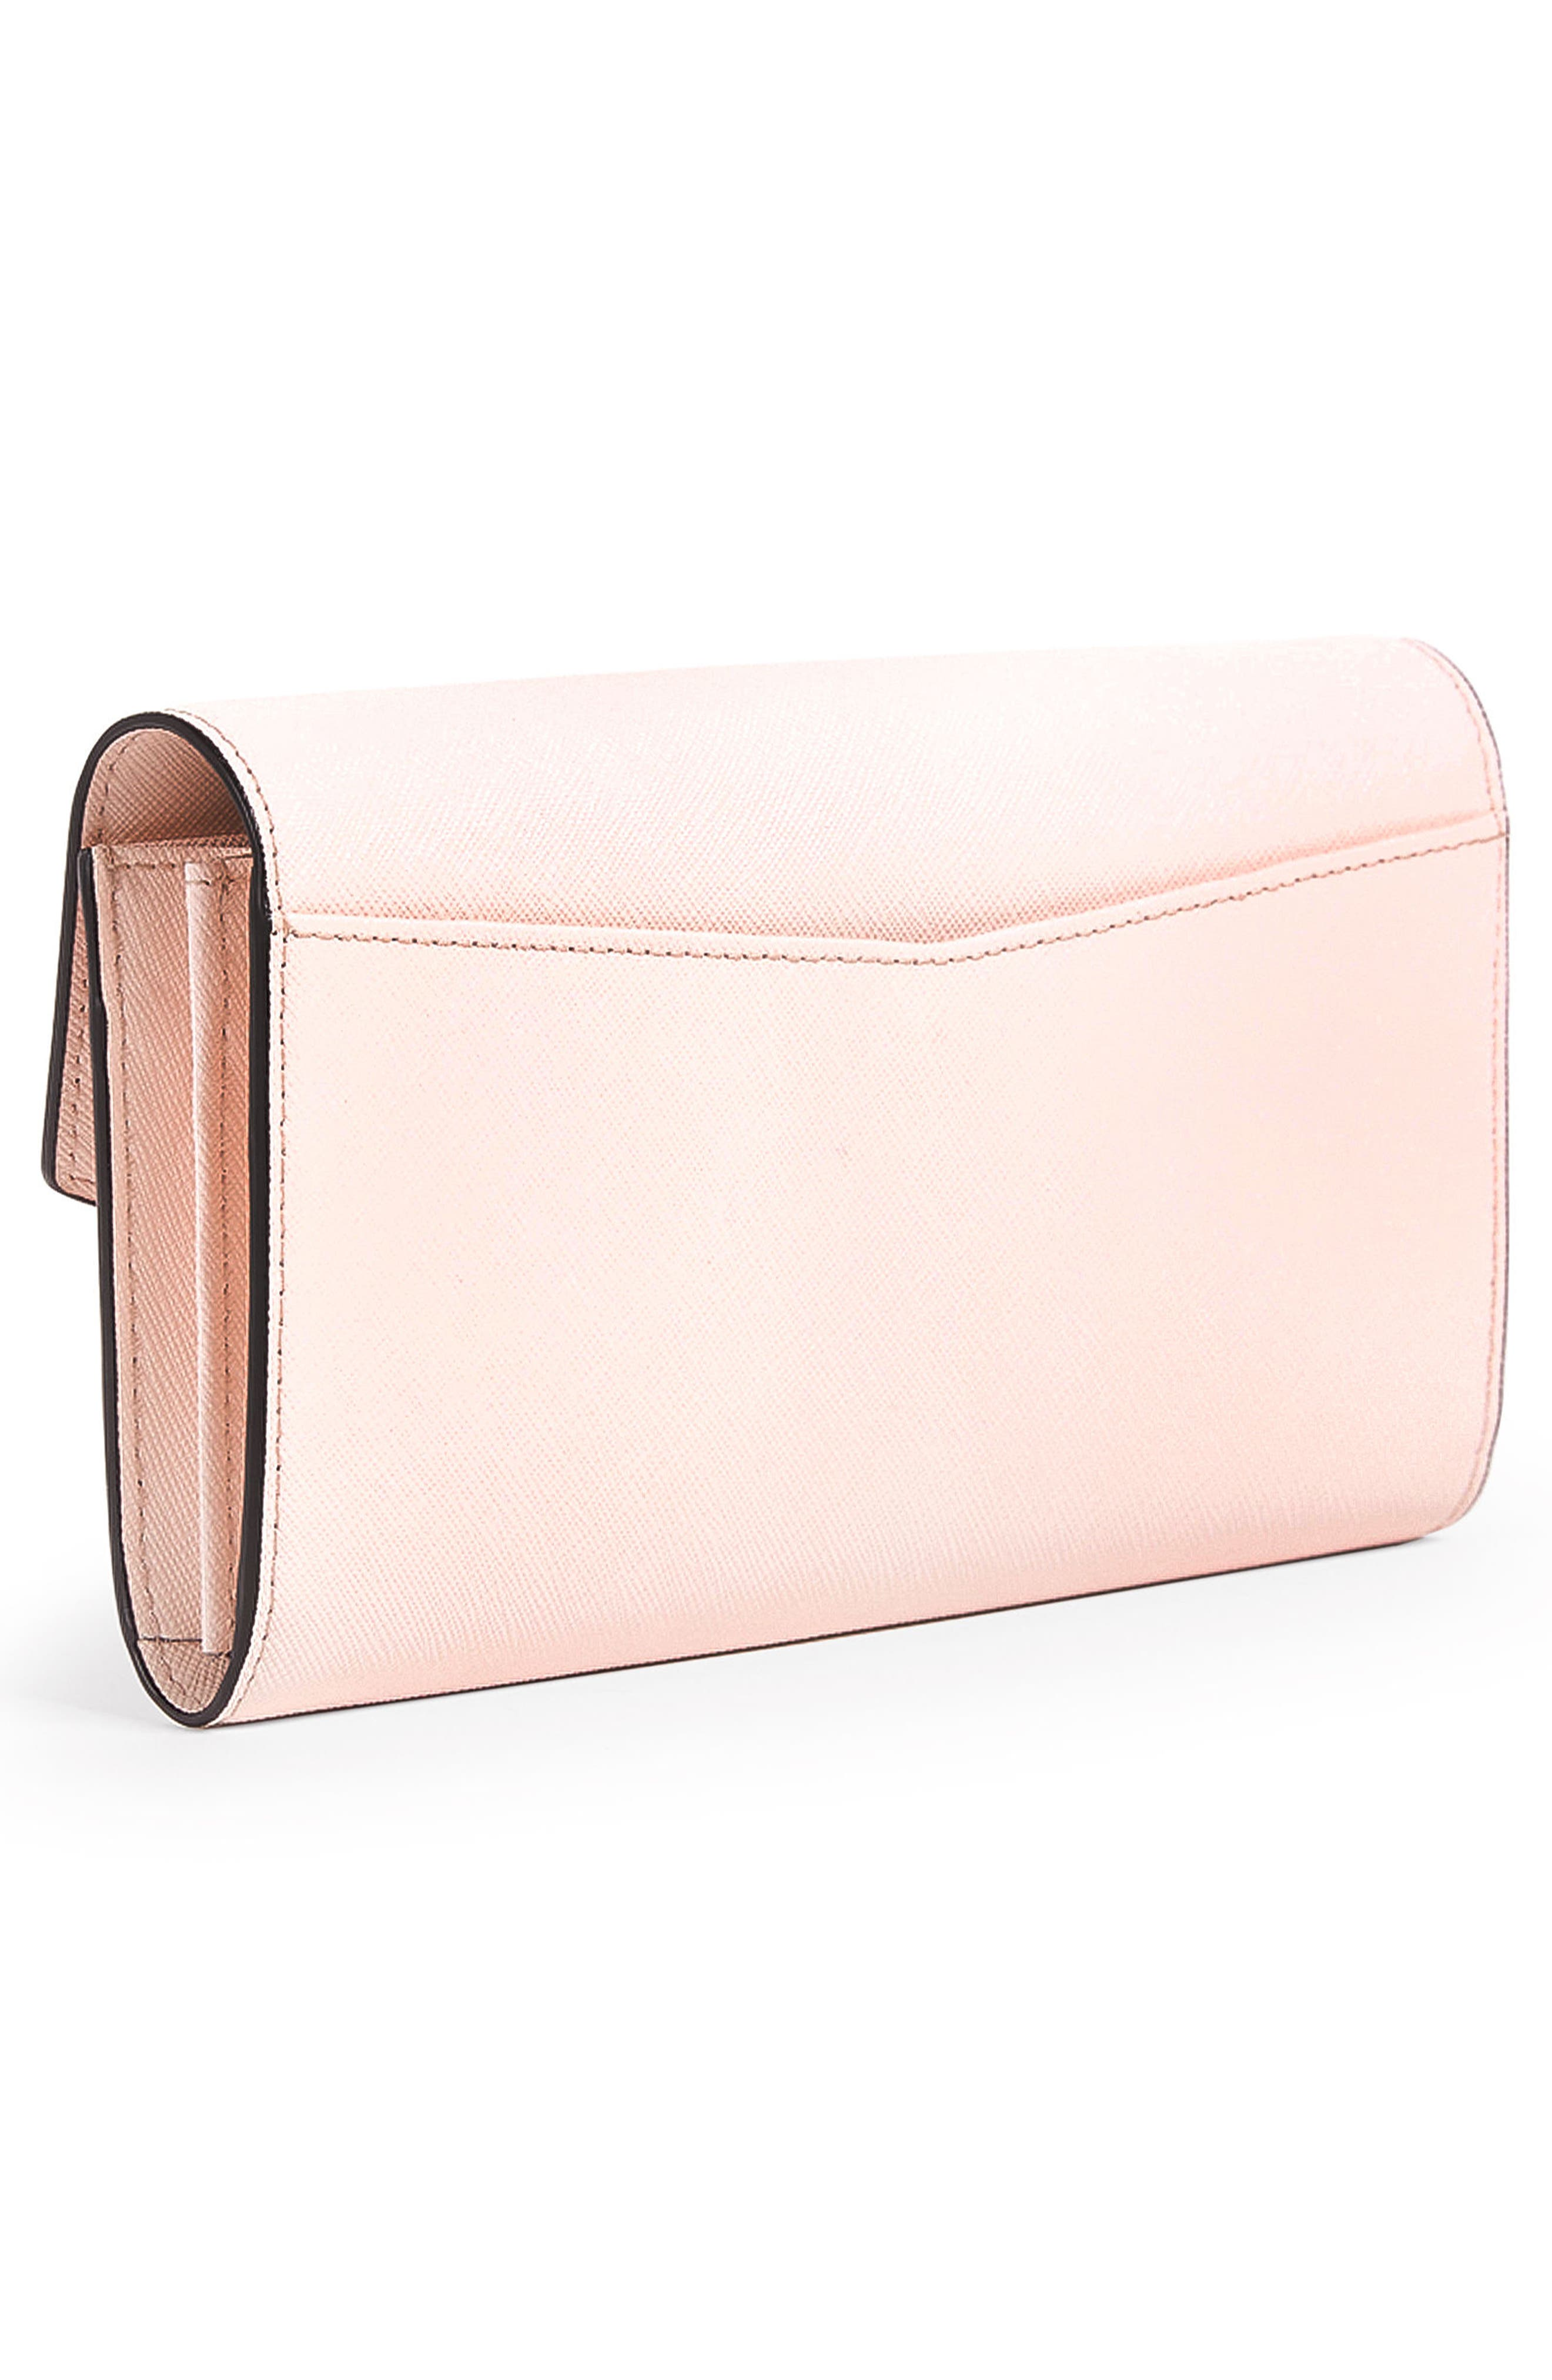 Cobble Hill Calfskin Leather Wallet,                             Alternate thumbnail 2, color,                             Blossom